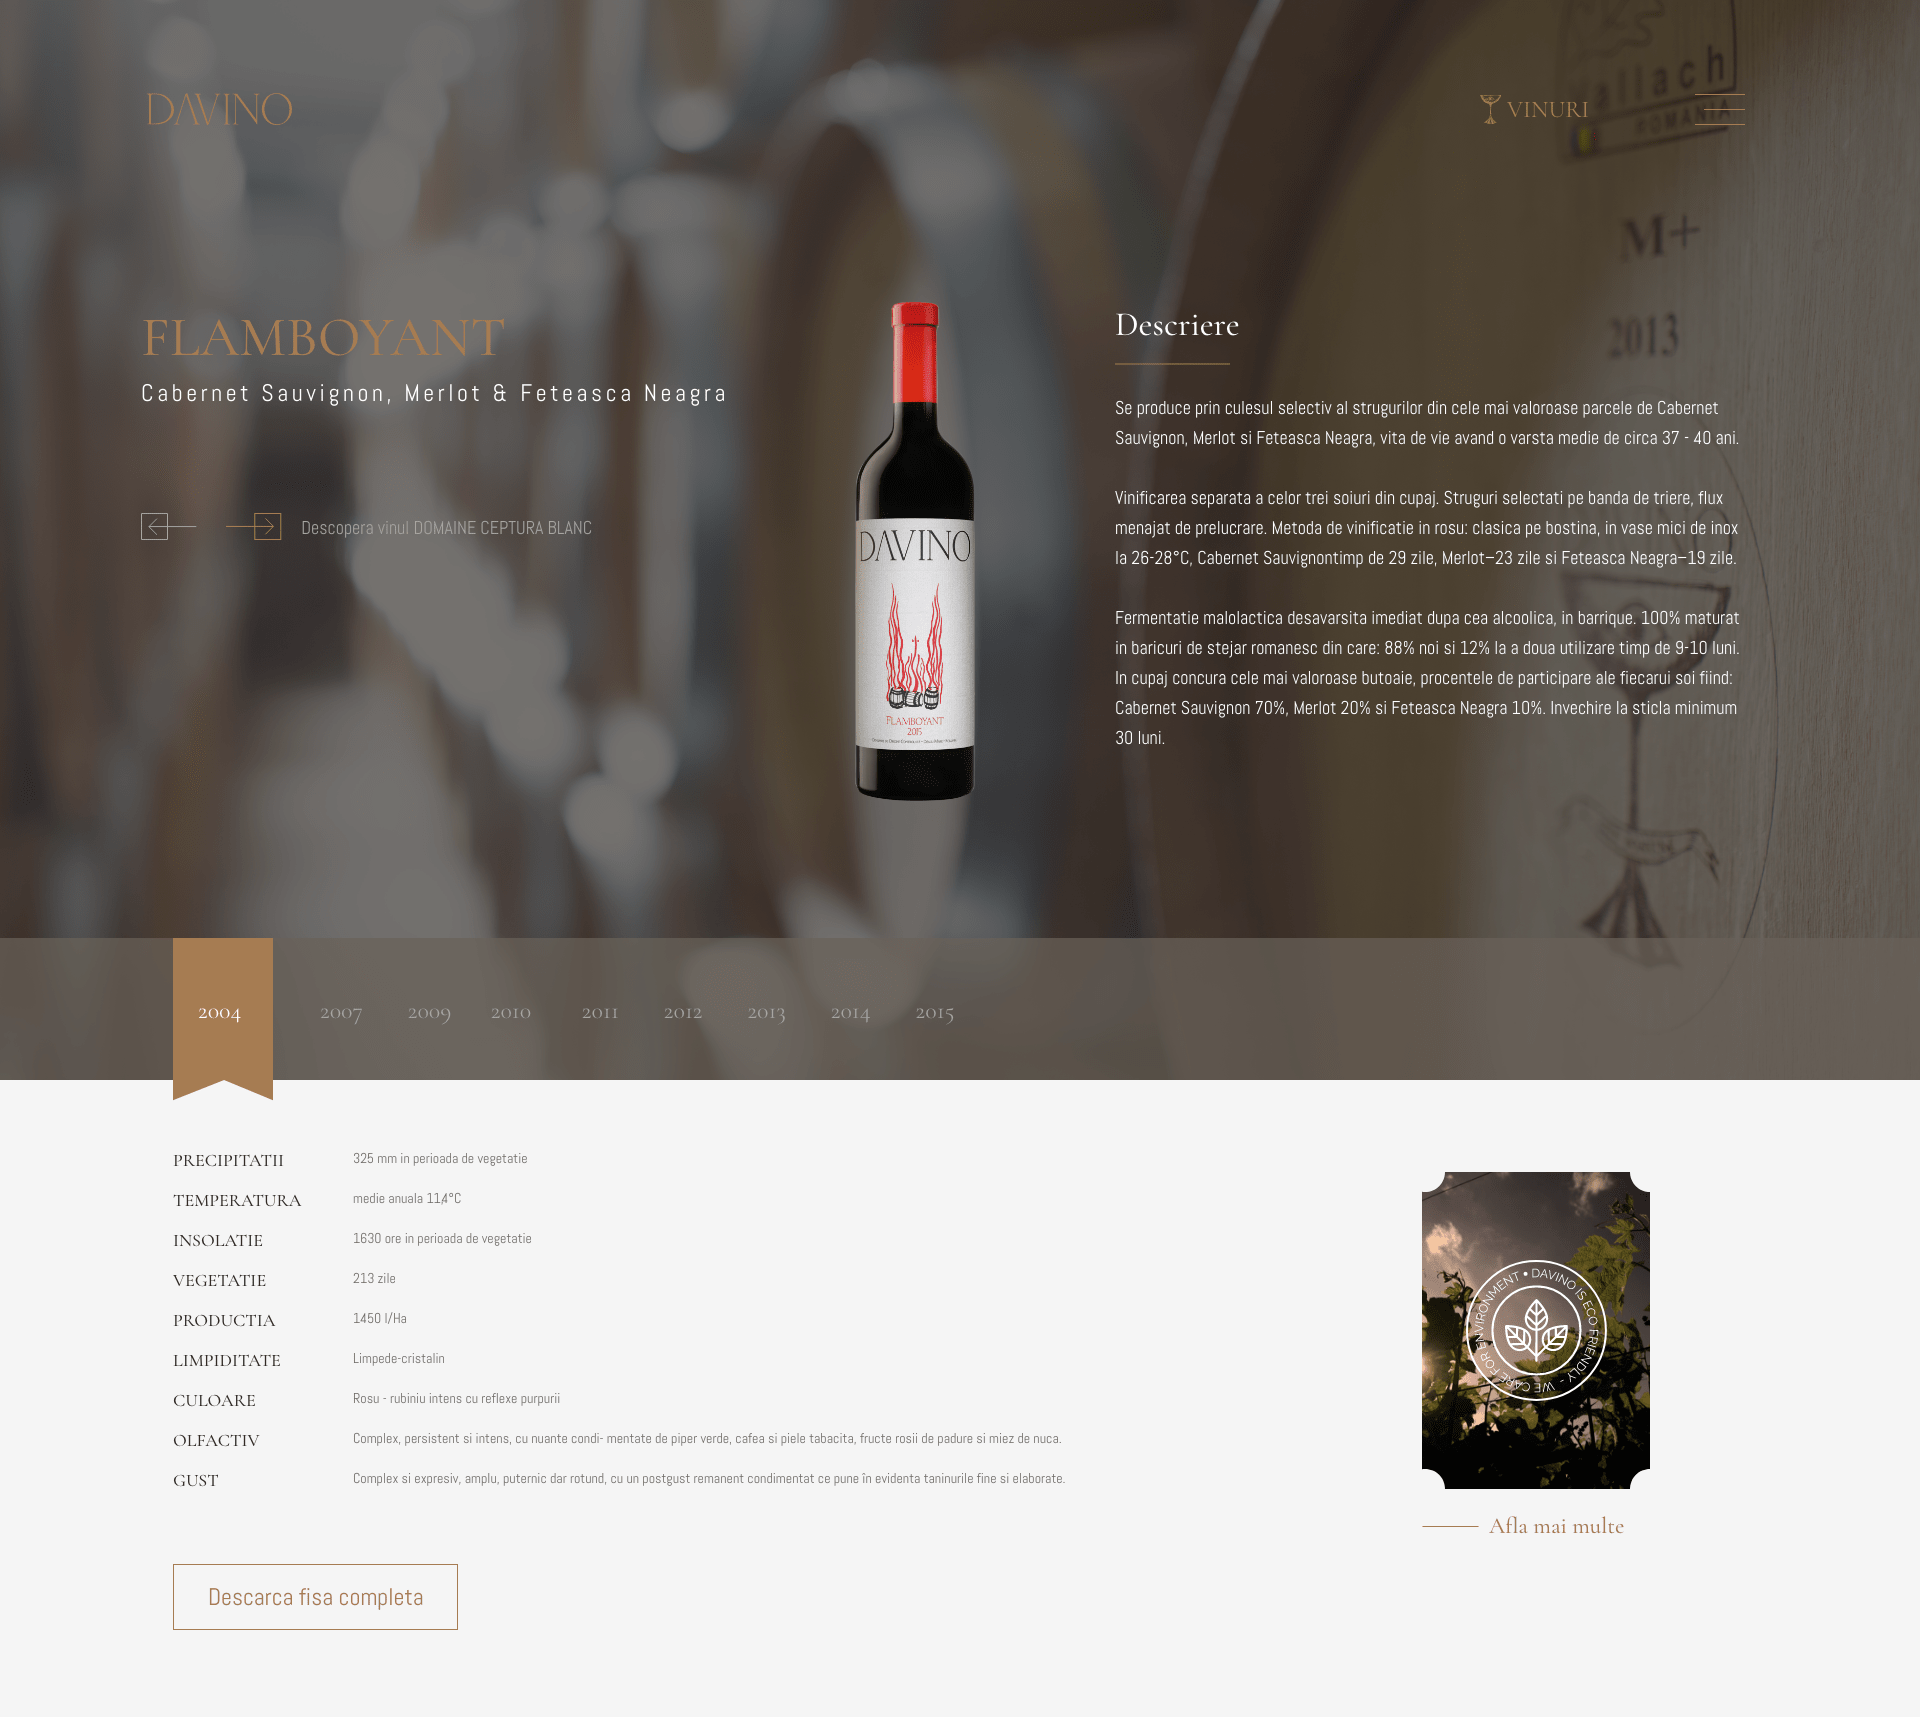 Davino wine brand website design